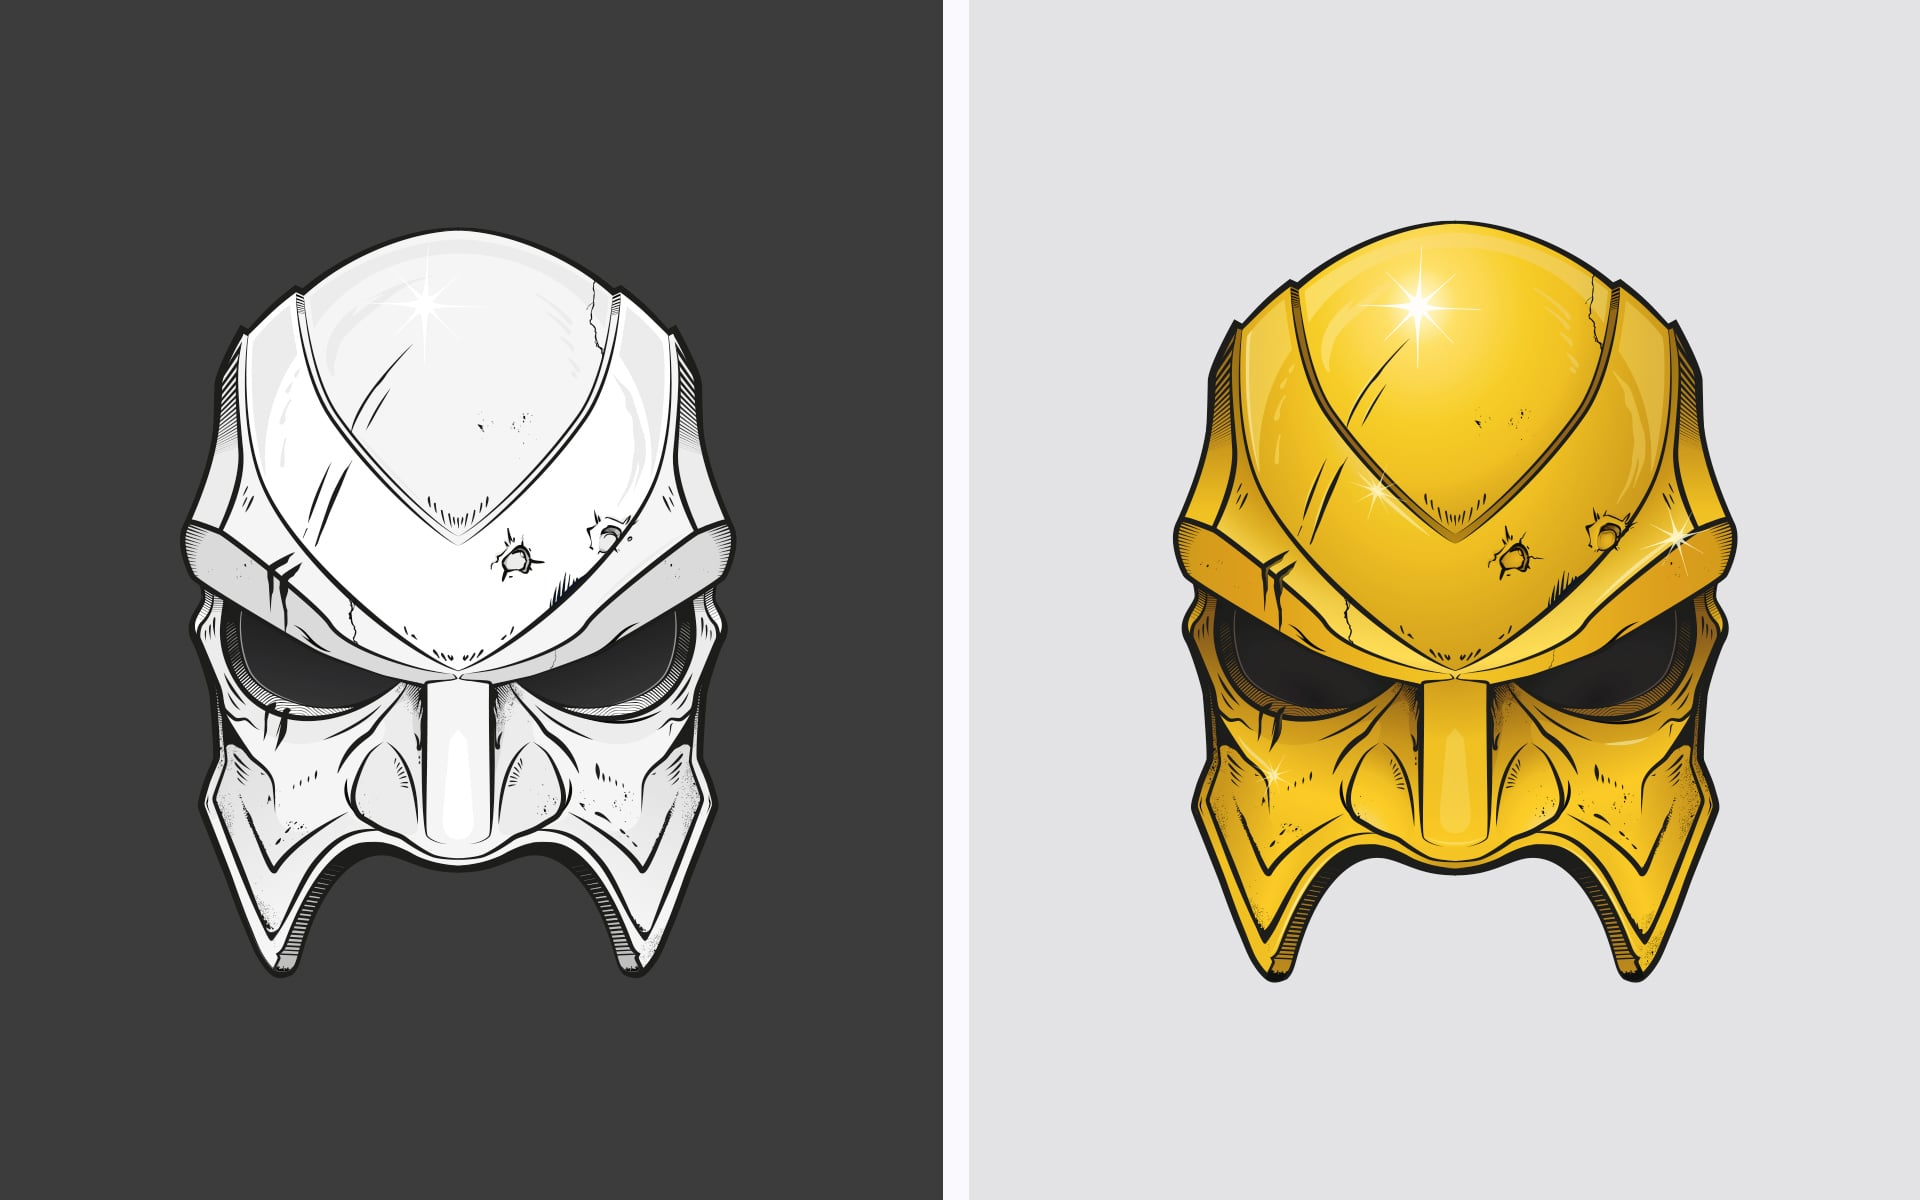 18 Karat Illustration Goldene Maske